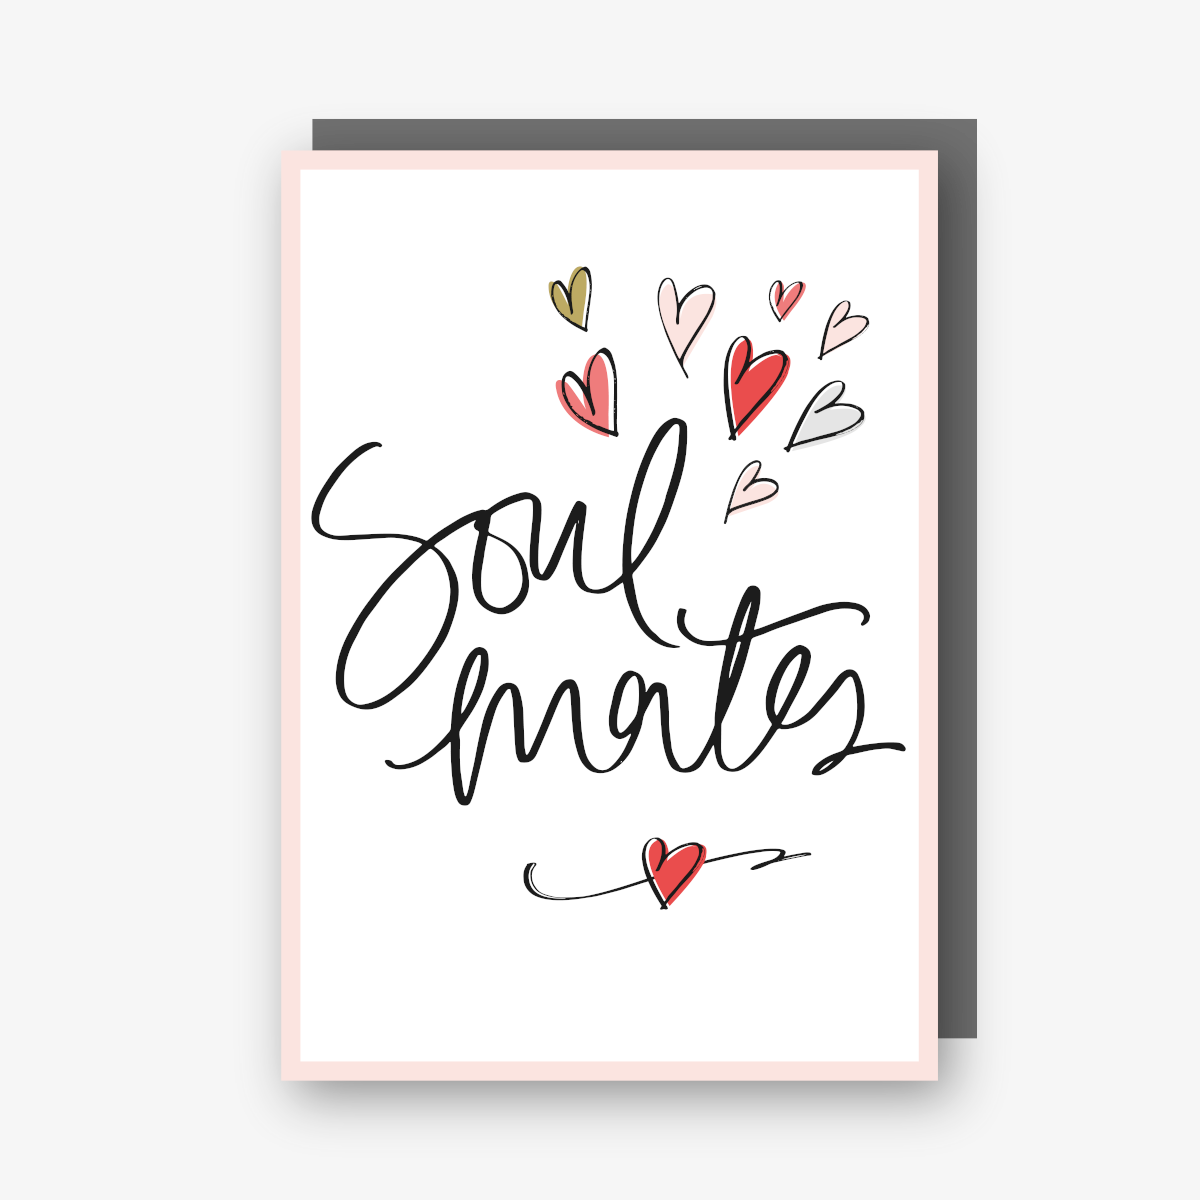 Soul Mates card from the Sharpie range.